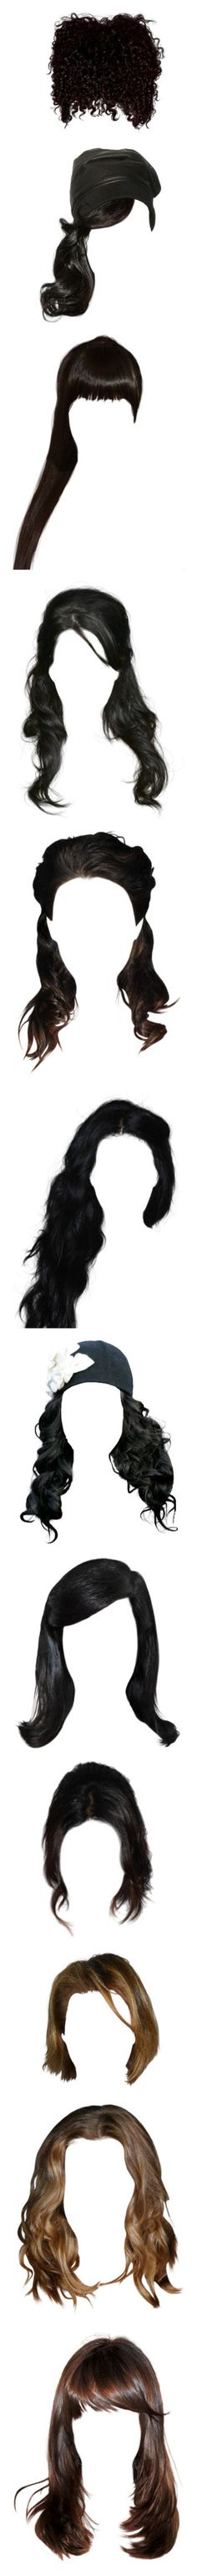 """""""HaiRR - Hair"""" by bananakill ❤ liked on Polyvore featuring beauty products, haircare, hair styling tools, hair, doll hair, hairstyle, wigs, filler, doll parts and dolls"""